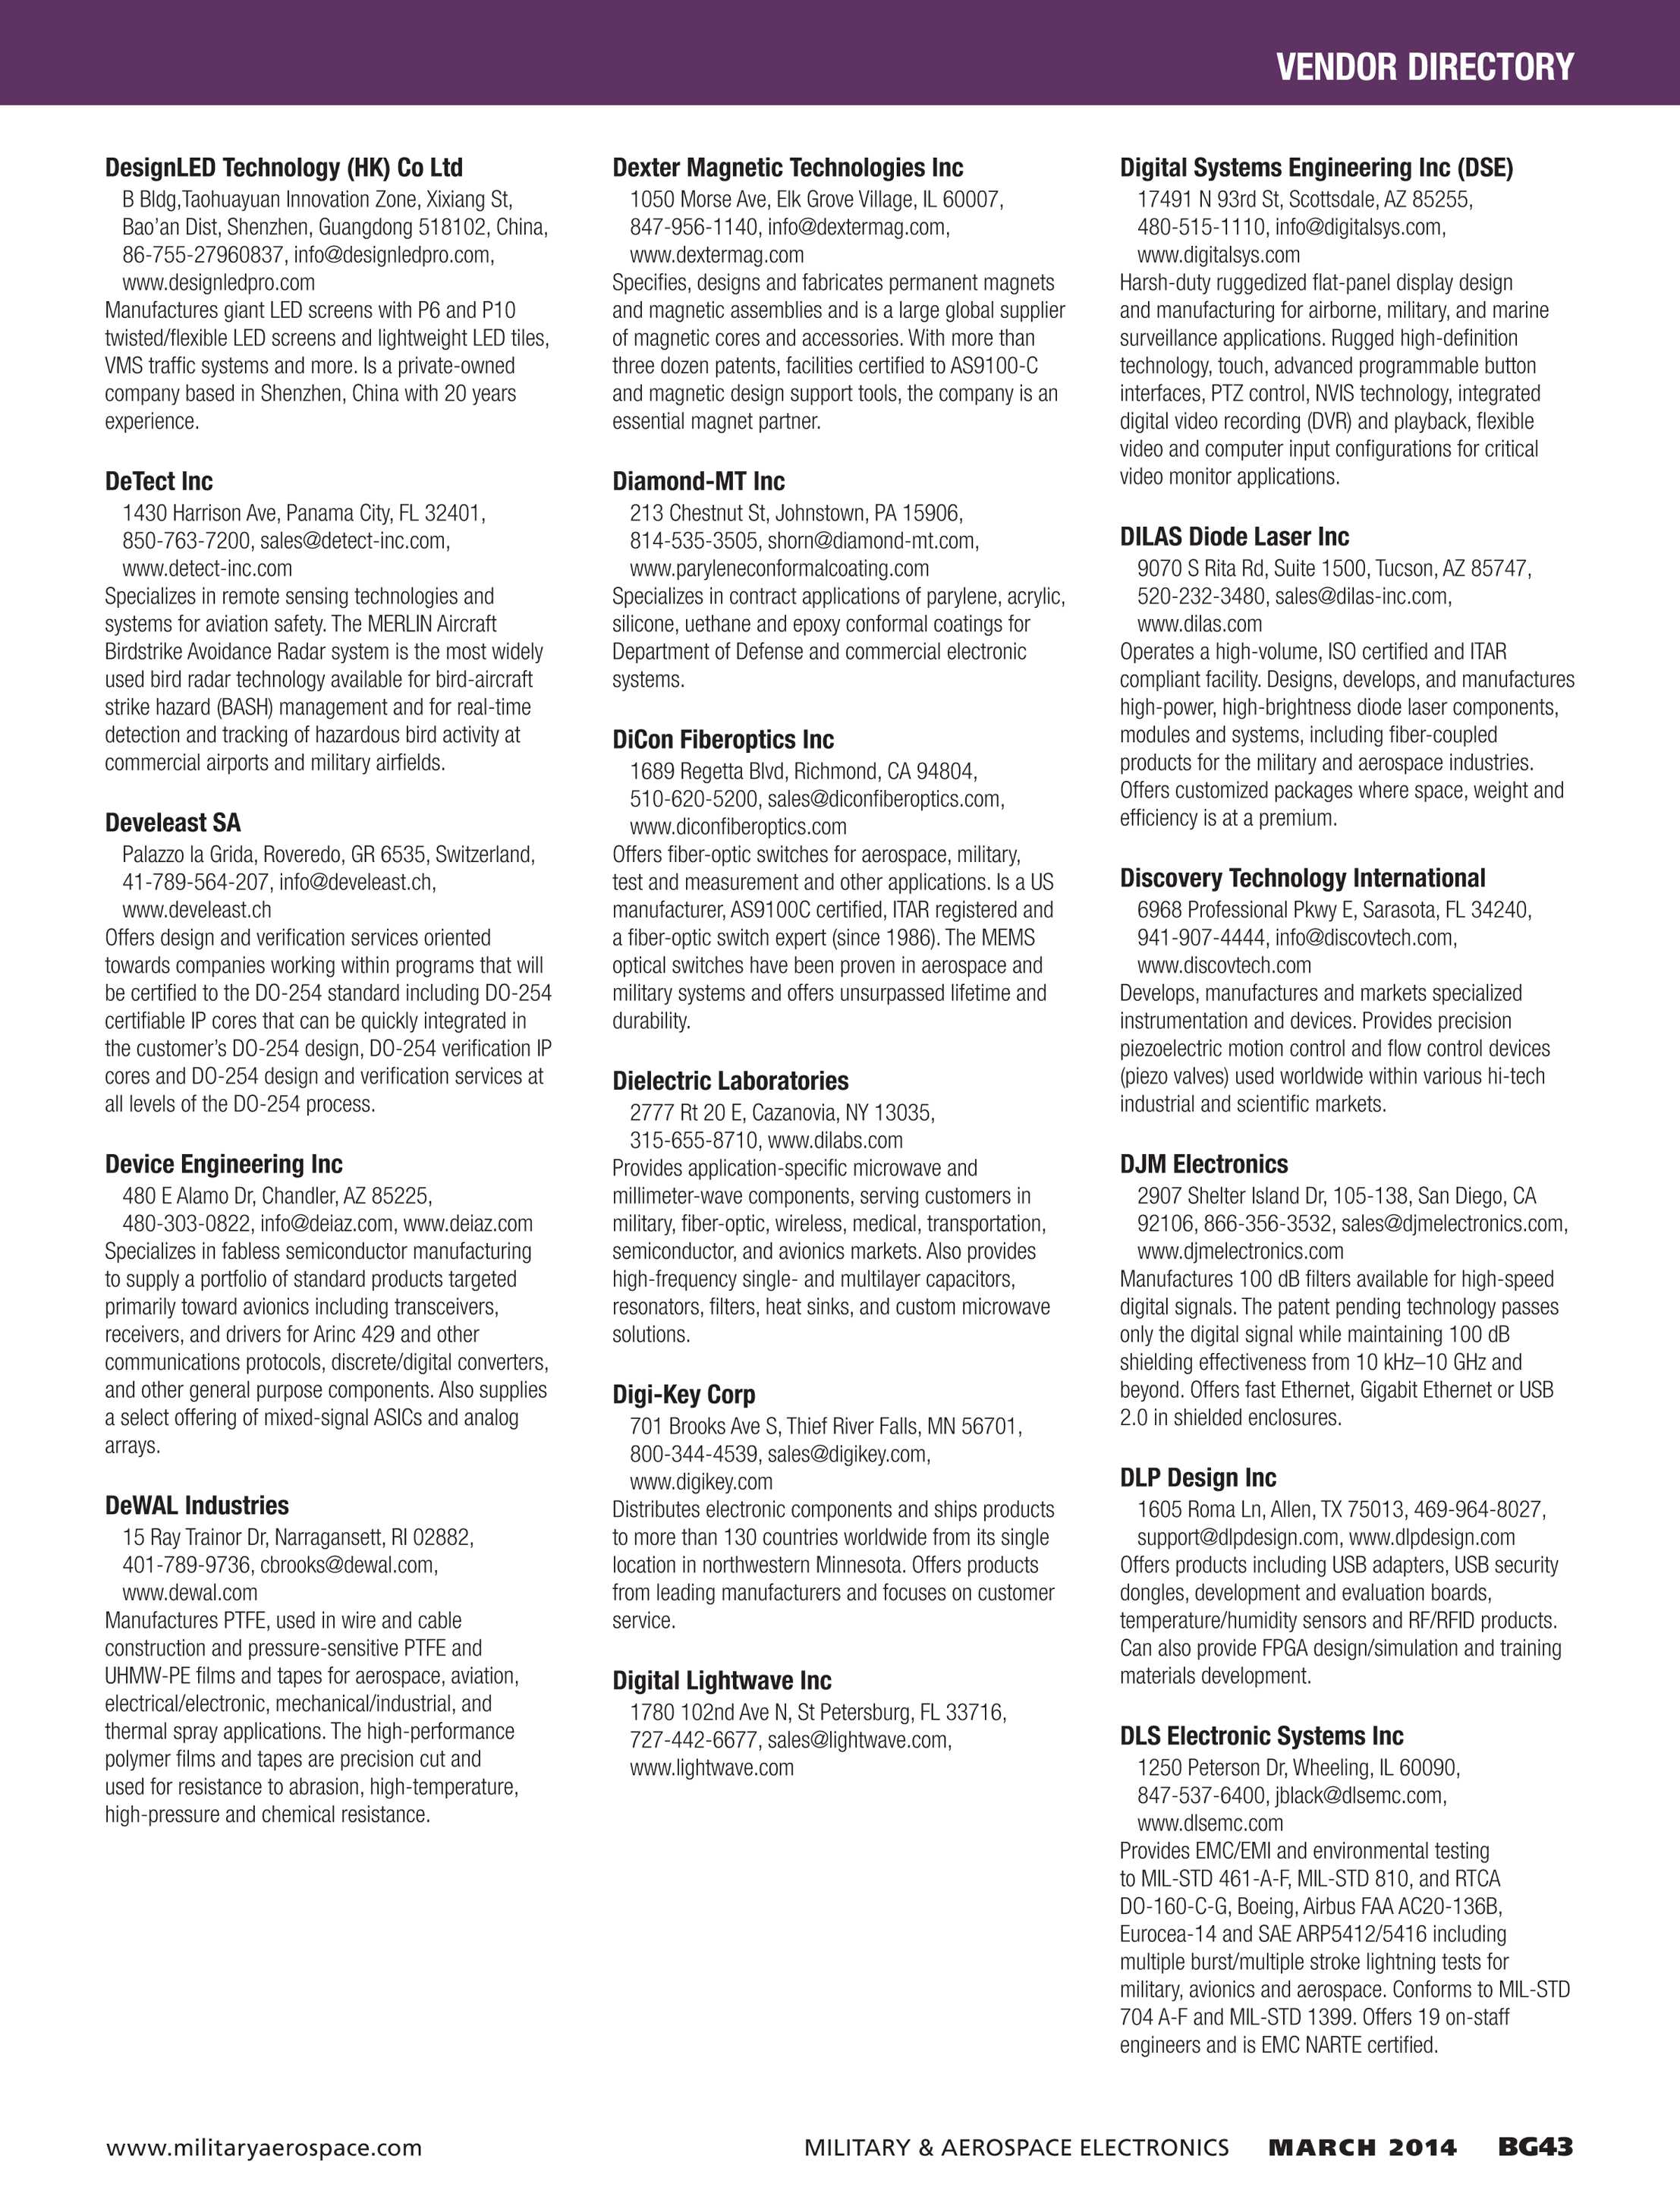 Military & Aerospace Electronics - Buyers Guide 2014 - page BG43